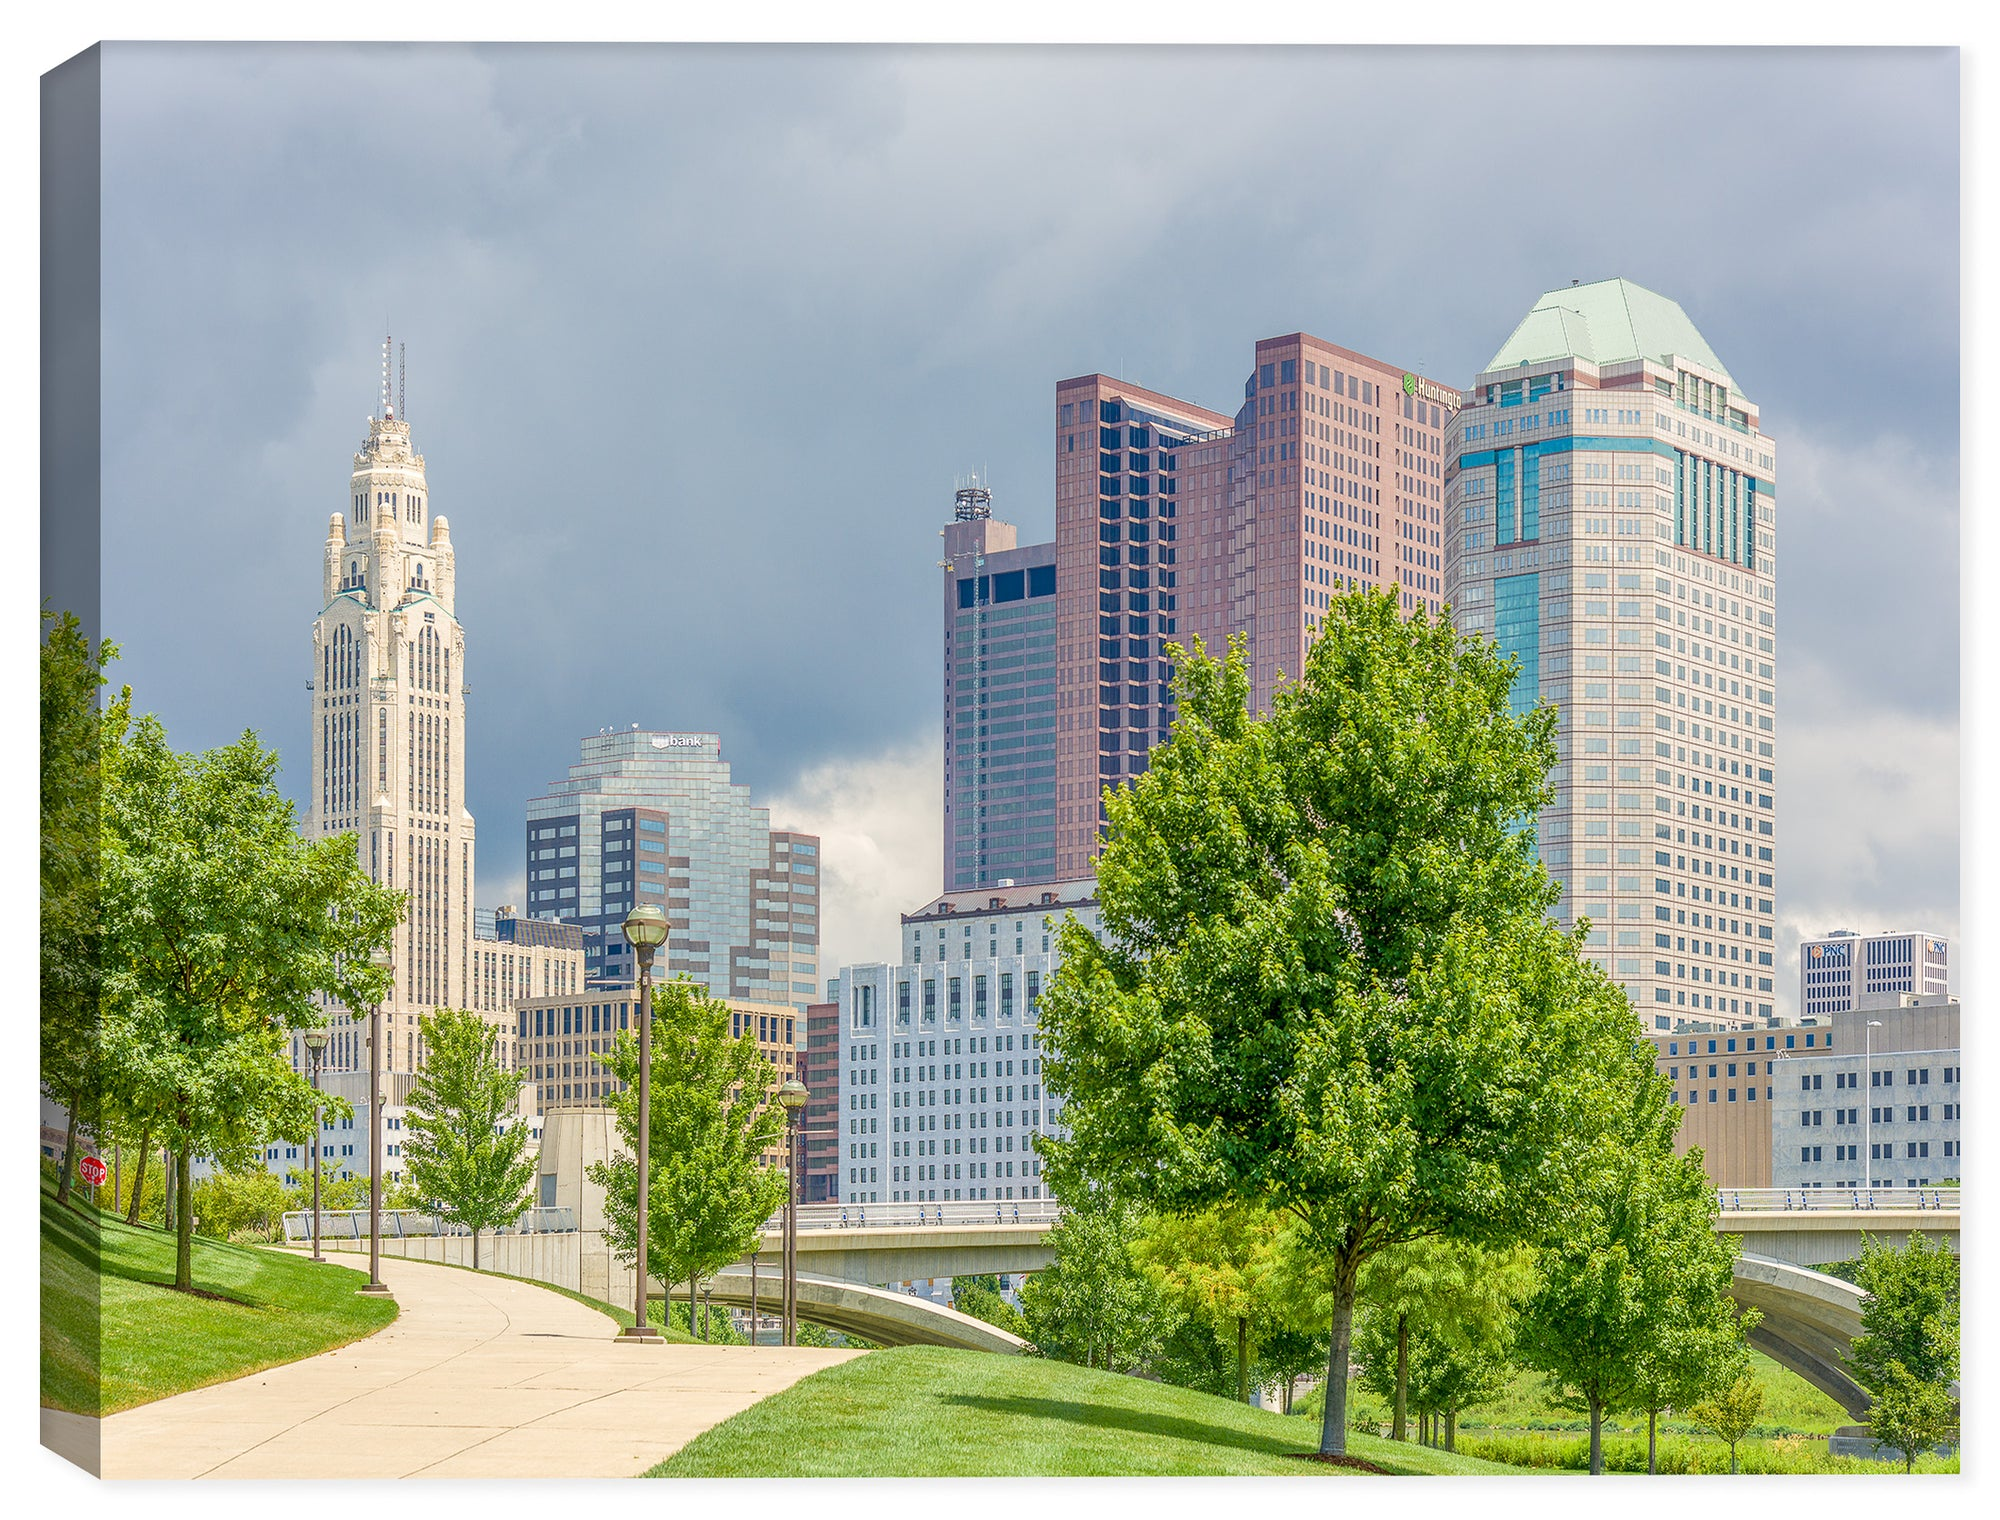 Downtown Columbus Ohio Riverwalk - Photograph by Ray Huffman